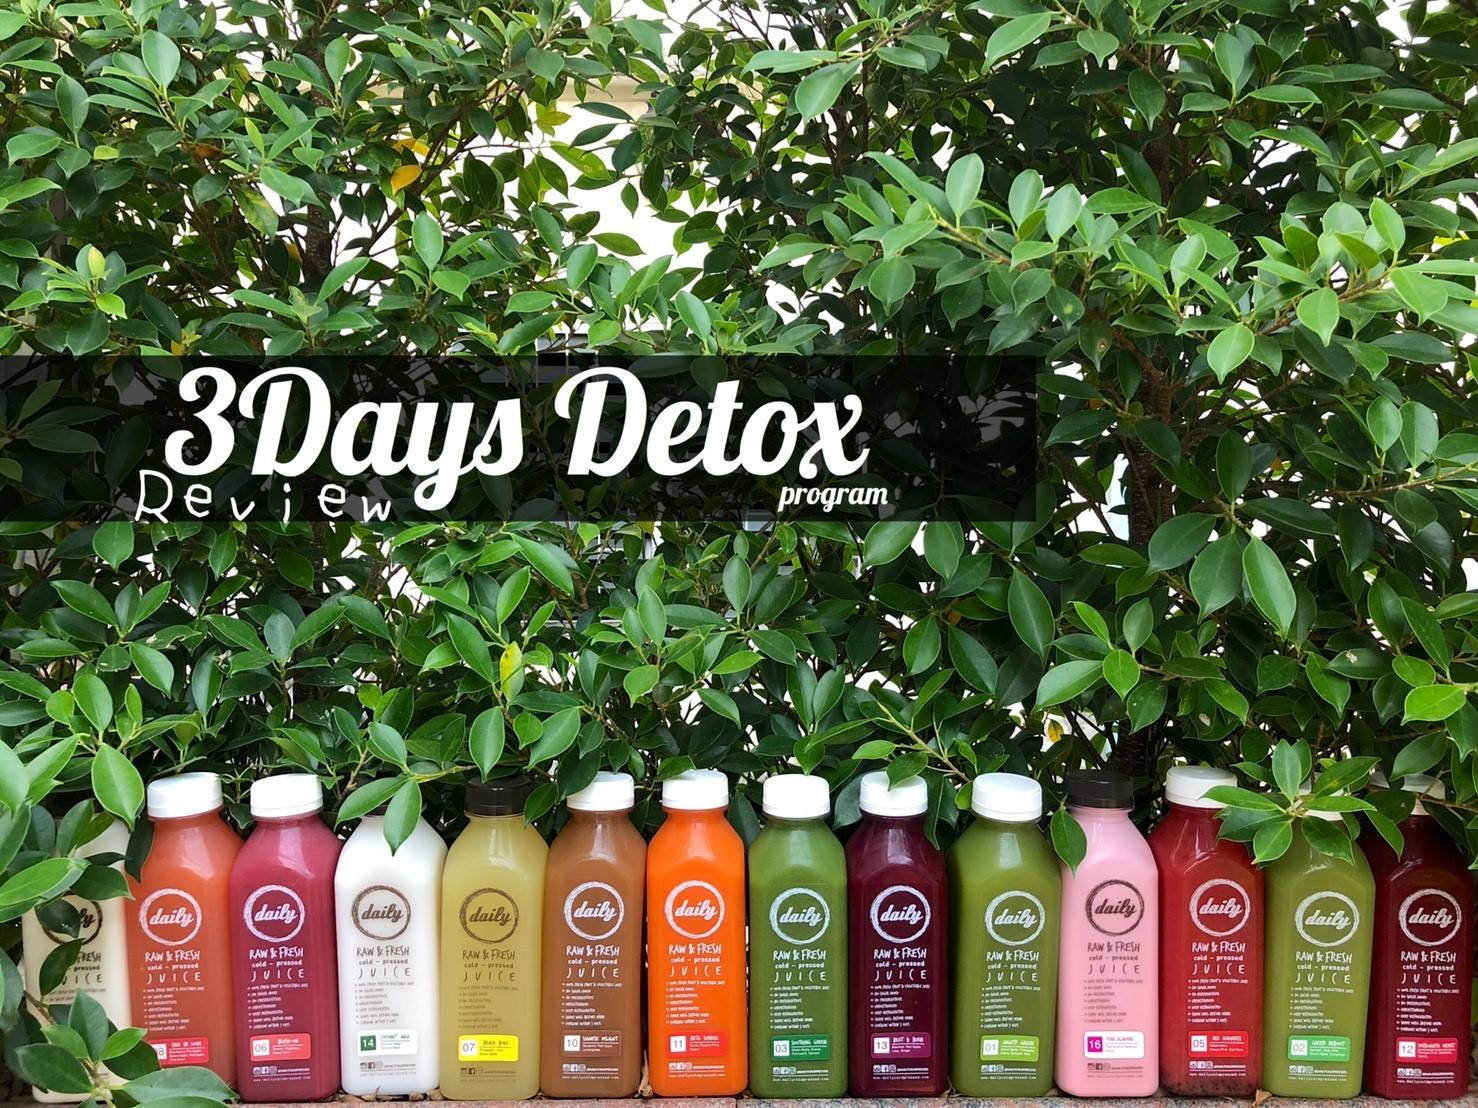 3 Days Detox by Daily Cold Pressed Juice